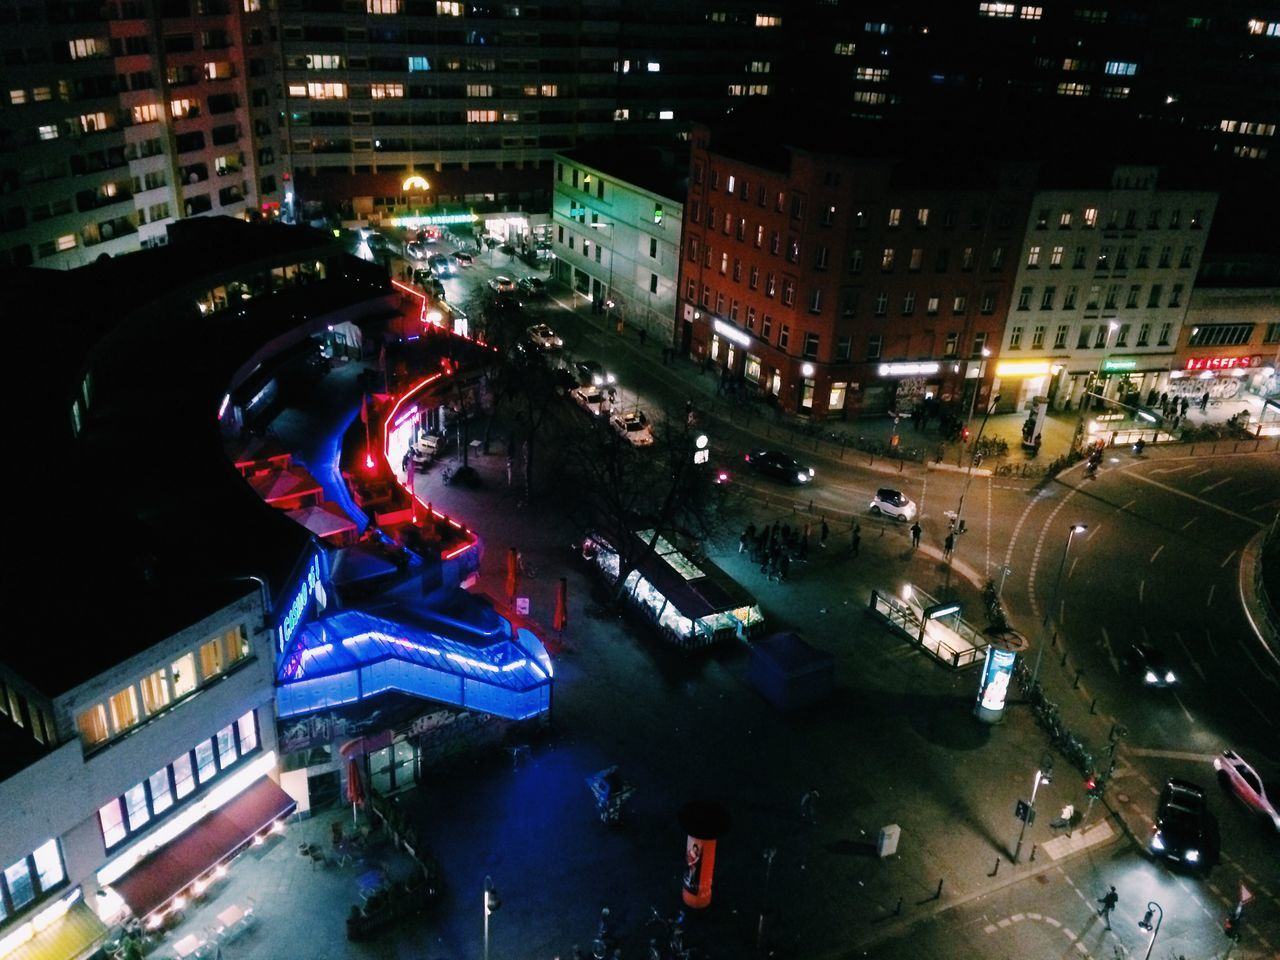 city, building exterior, night, architecture, illuminated, street, high angle view, city life, built structure, cityscape, road, city street, outdoors, land vehicle, crowd, people